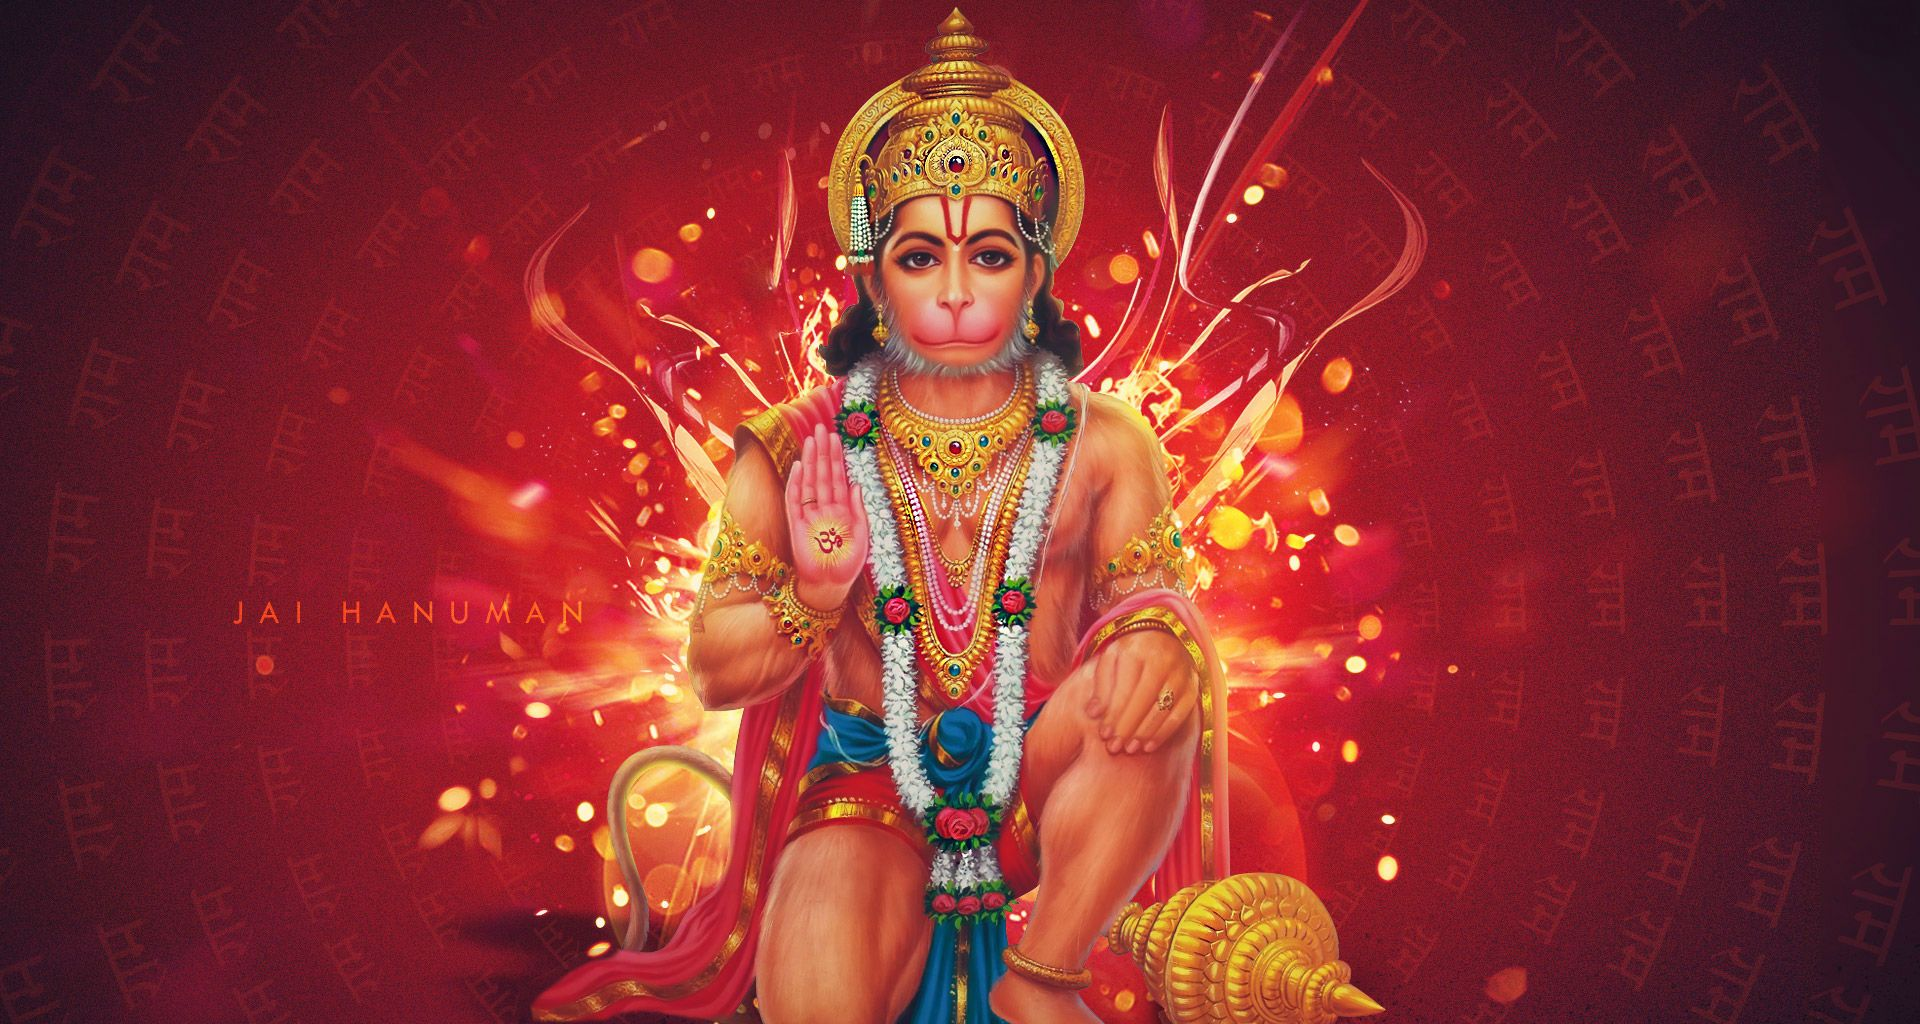 Lord Hanuman HD wallpaper for download in laptop and desktop